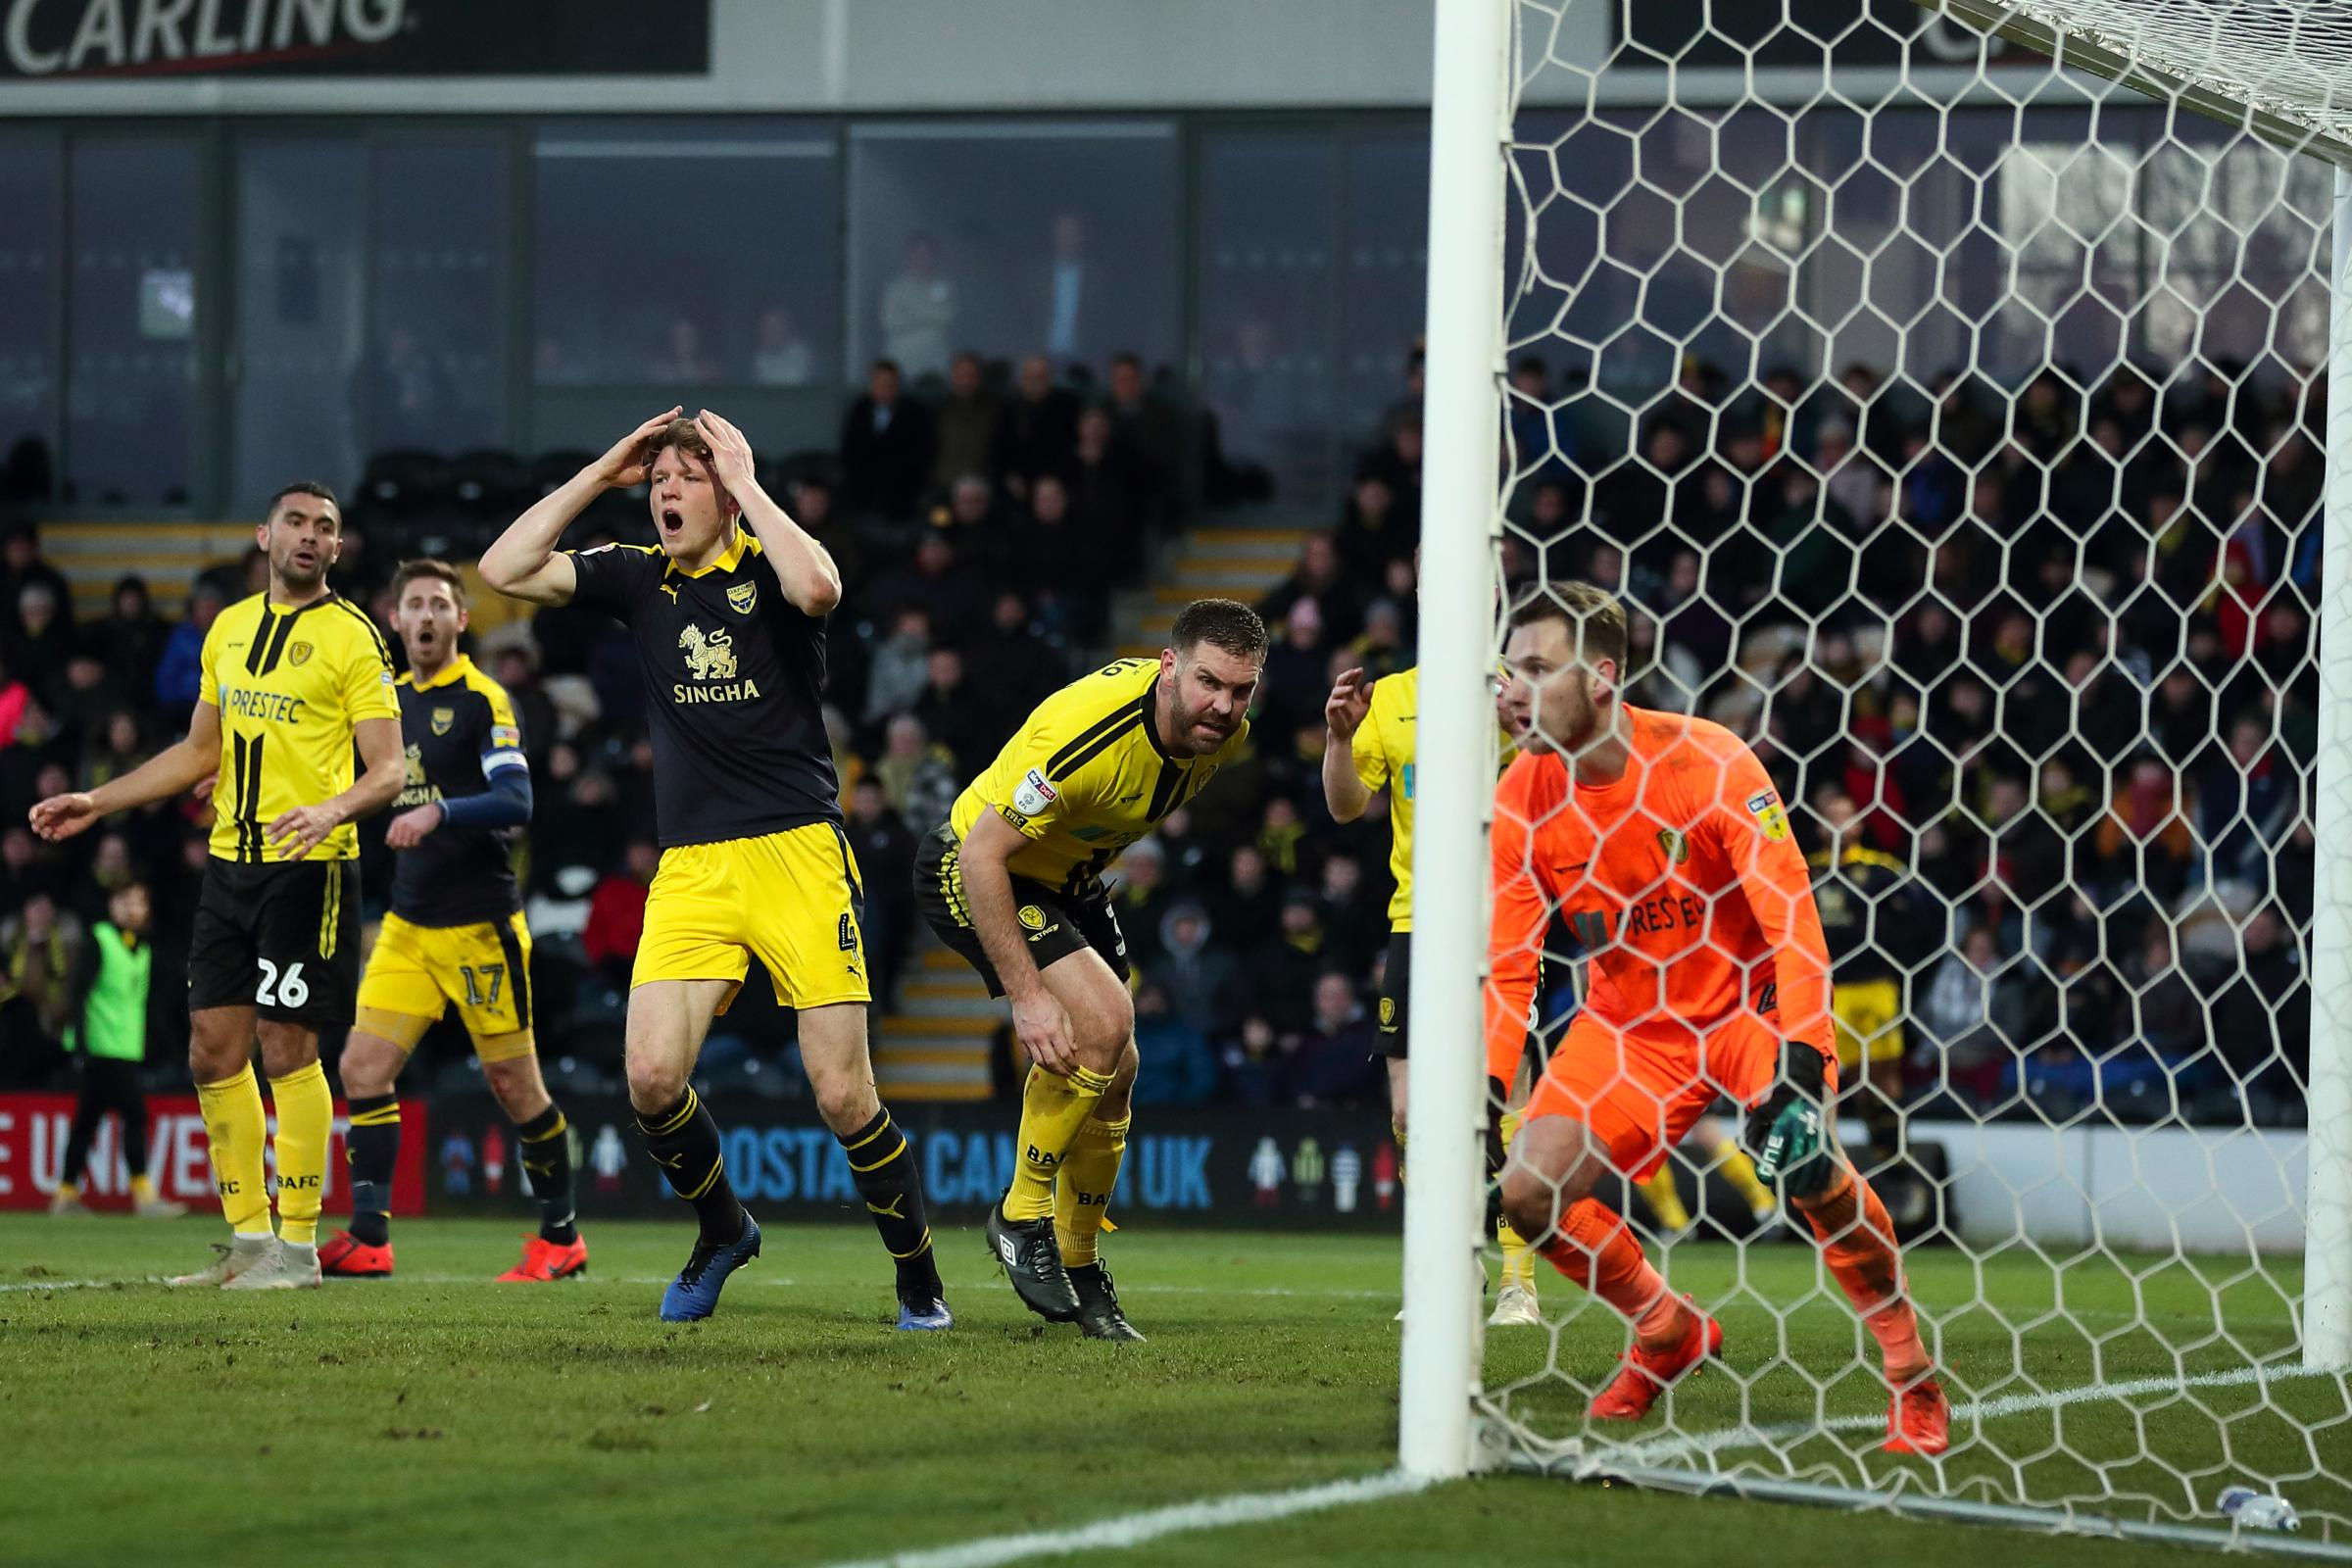 On a day of frustration for Oxford United, defender Rob Dickie cannot believe it as another chance goes begging against ten-man Burton Albion Picture: James Williamson